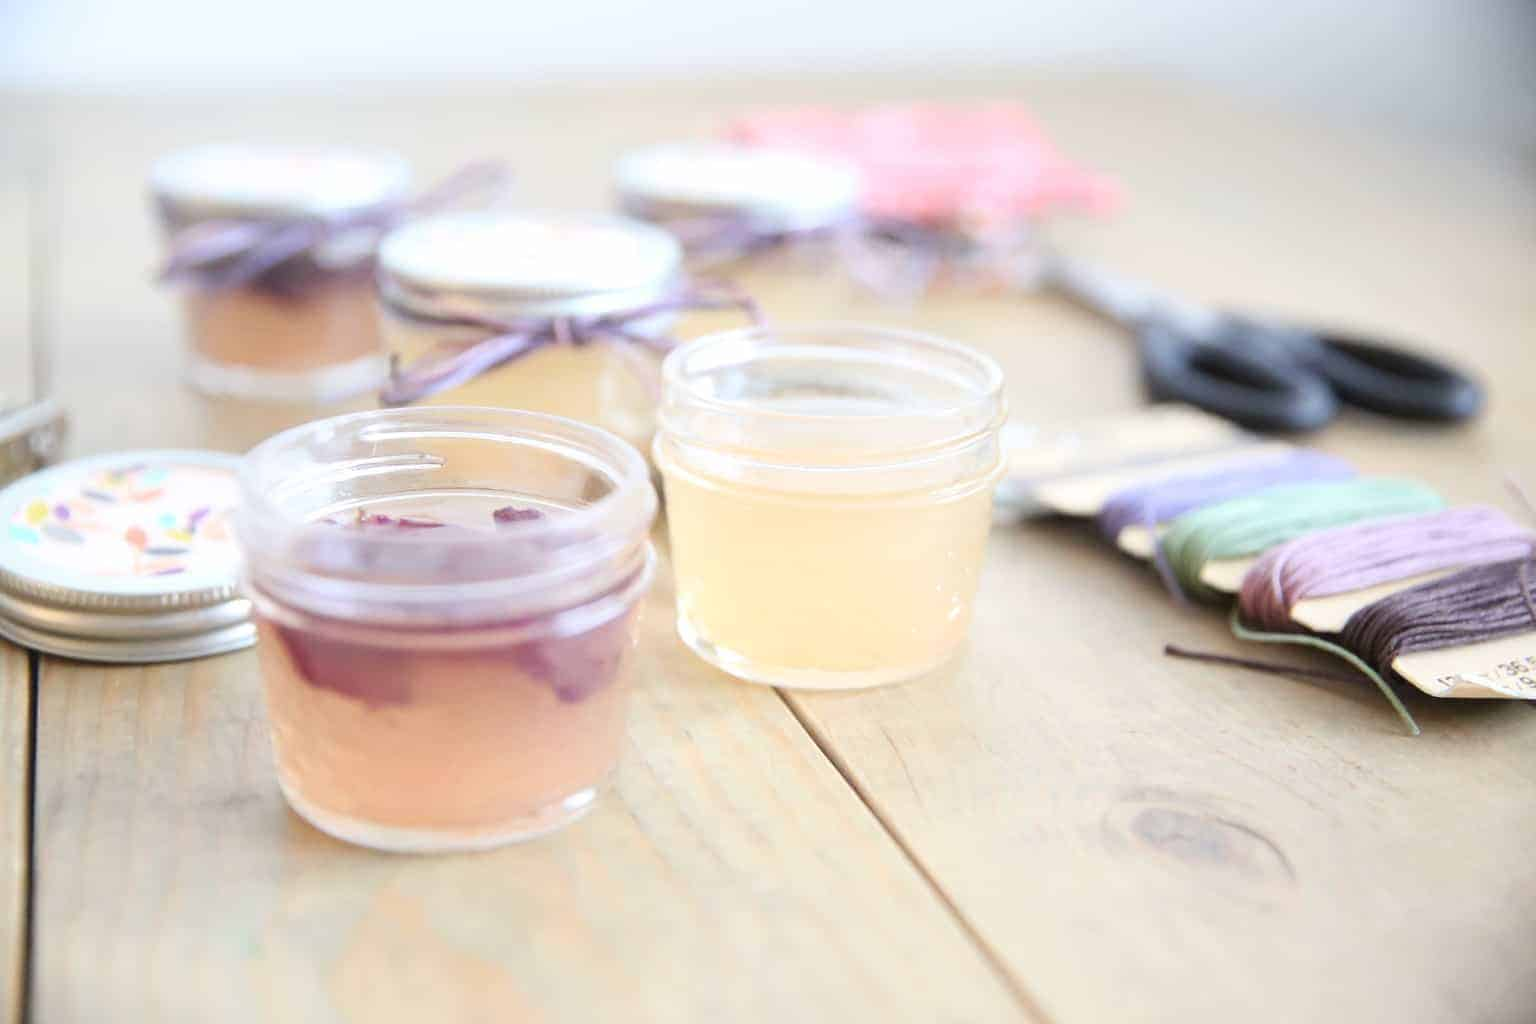 Homemade air fresheners in shallow glass jars.